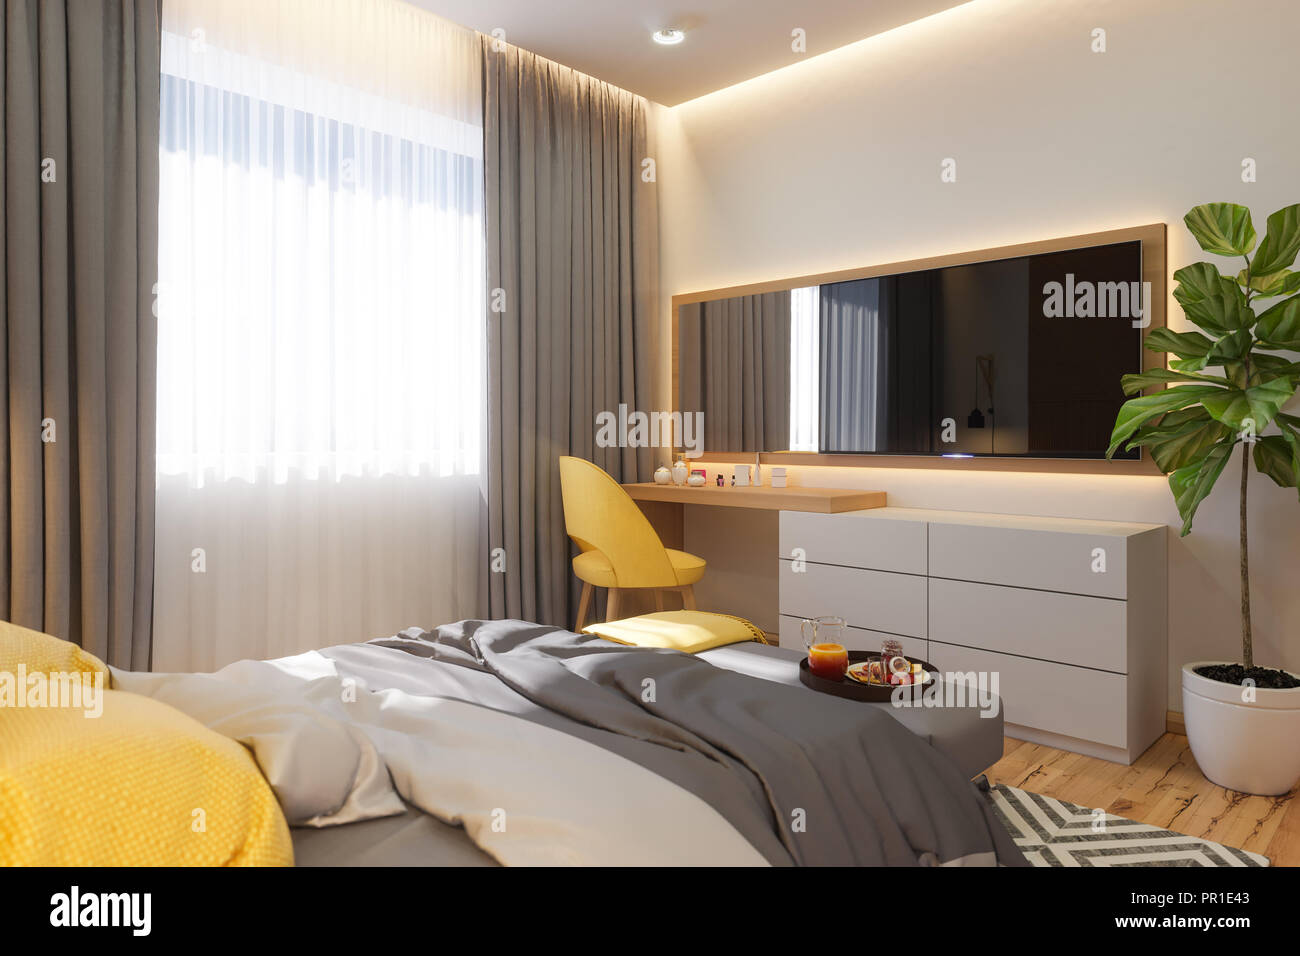 3d Illustration Bedroom Interior Design Concept Visualization Of The Interior In The Scandinavian Architectural Style Render In Warm Natural Color Stock Photo Alamy